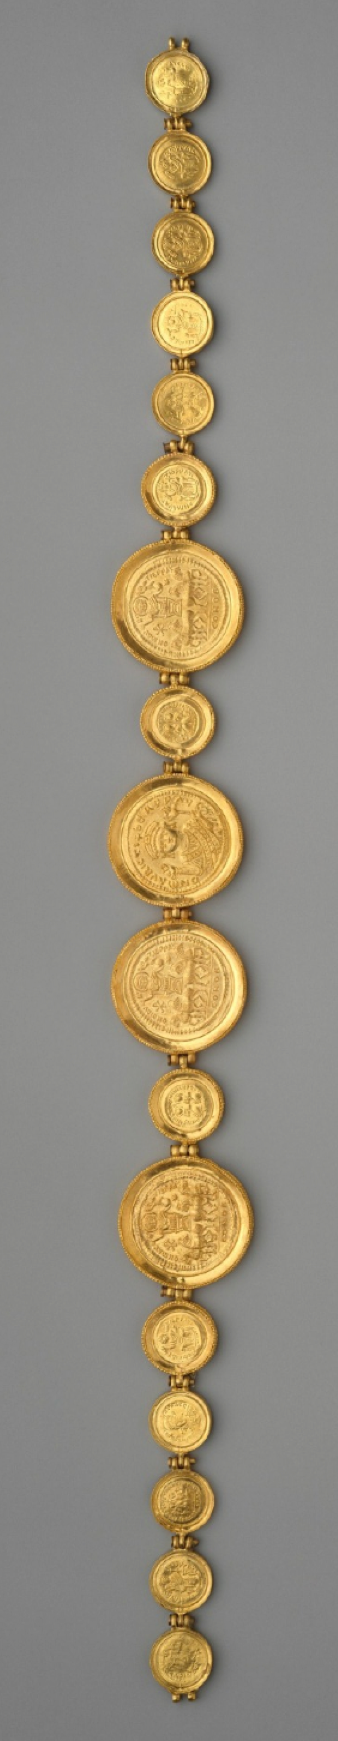 Girdle with Coins and Medallions, circa ca. 583, reassembled after discovery; Byzantine. This incomplete, massive gold girdle composed of a series of solidi & medallions may have been worn as an insignia of office. The four medallions depicting the emperor Maurice Tiberius for him in 583. Coins are stamped CONOB, indicating that they were minted in the capital city. There is also a coin of Theodosius II (r. 402–50) & four from the brief joint rule of Justin I and Justinian in 527.